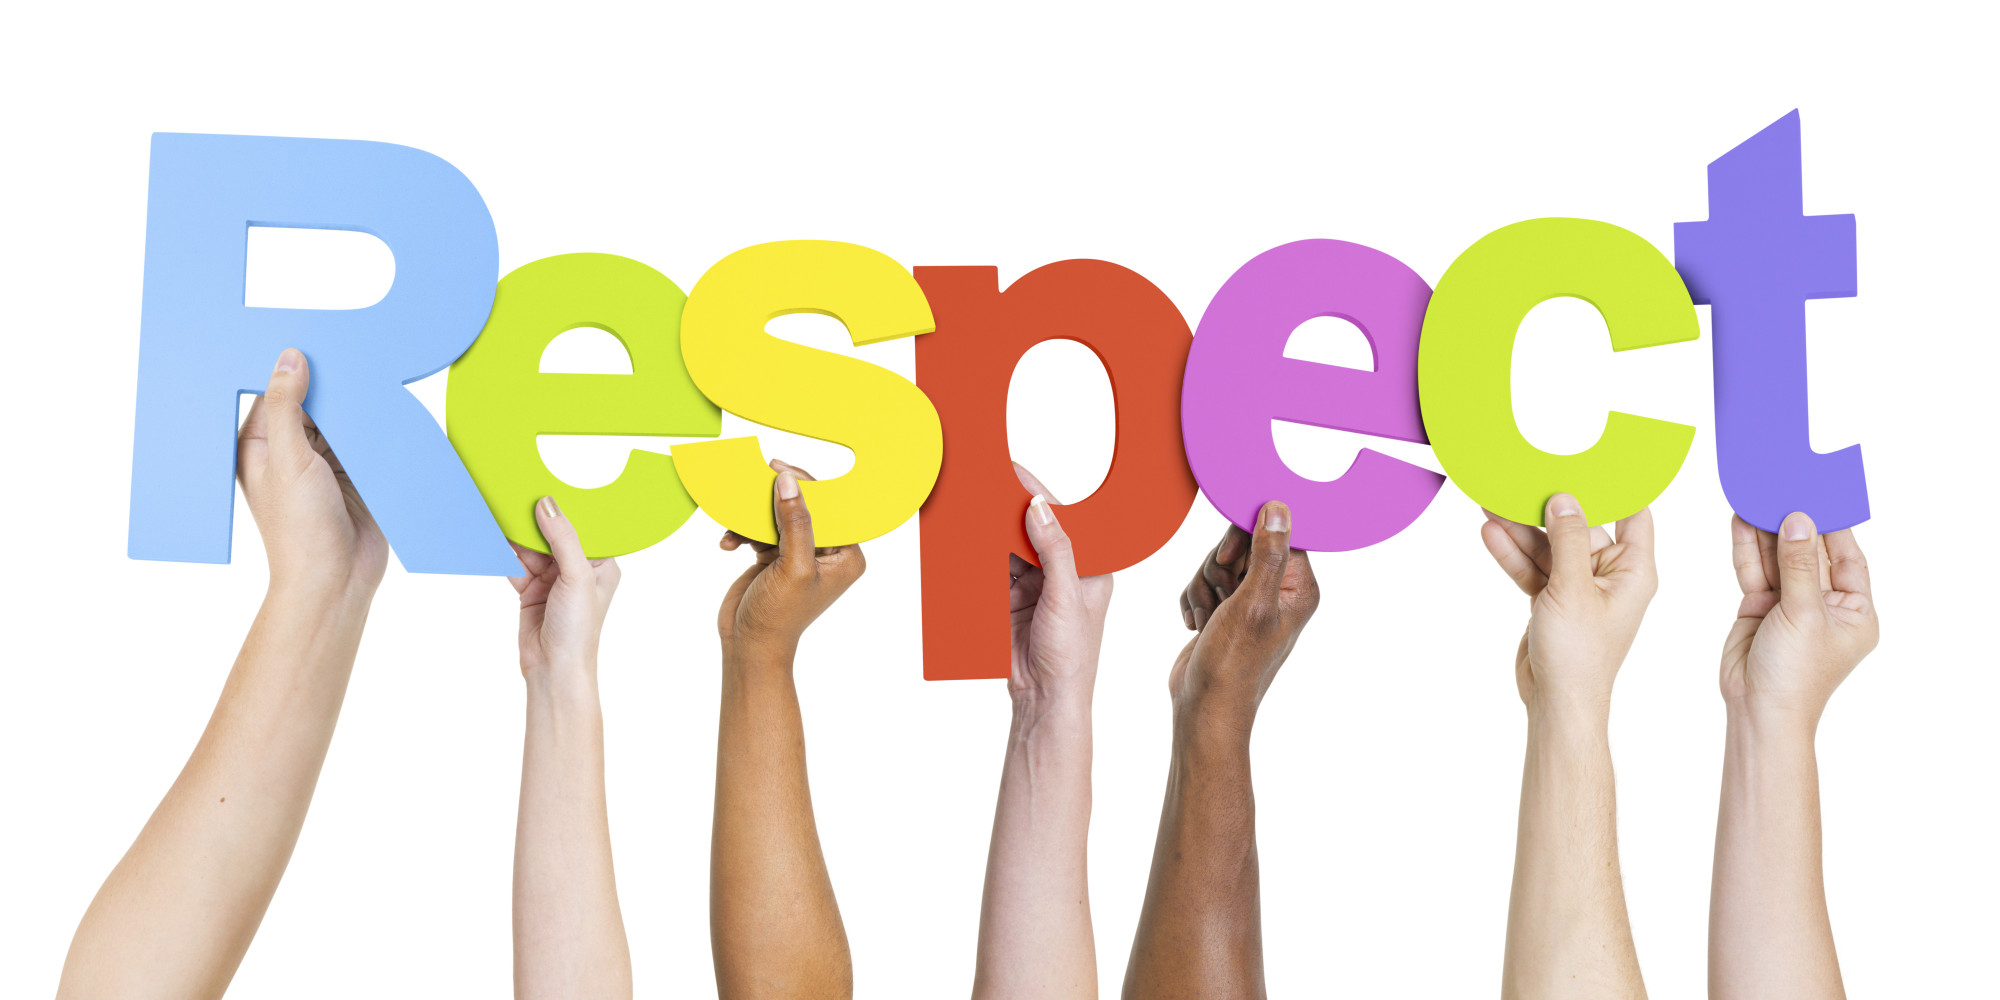 respect others Browse our collection of inspirational, wise, and humorous respecting others quotes and respecting others sayings.